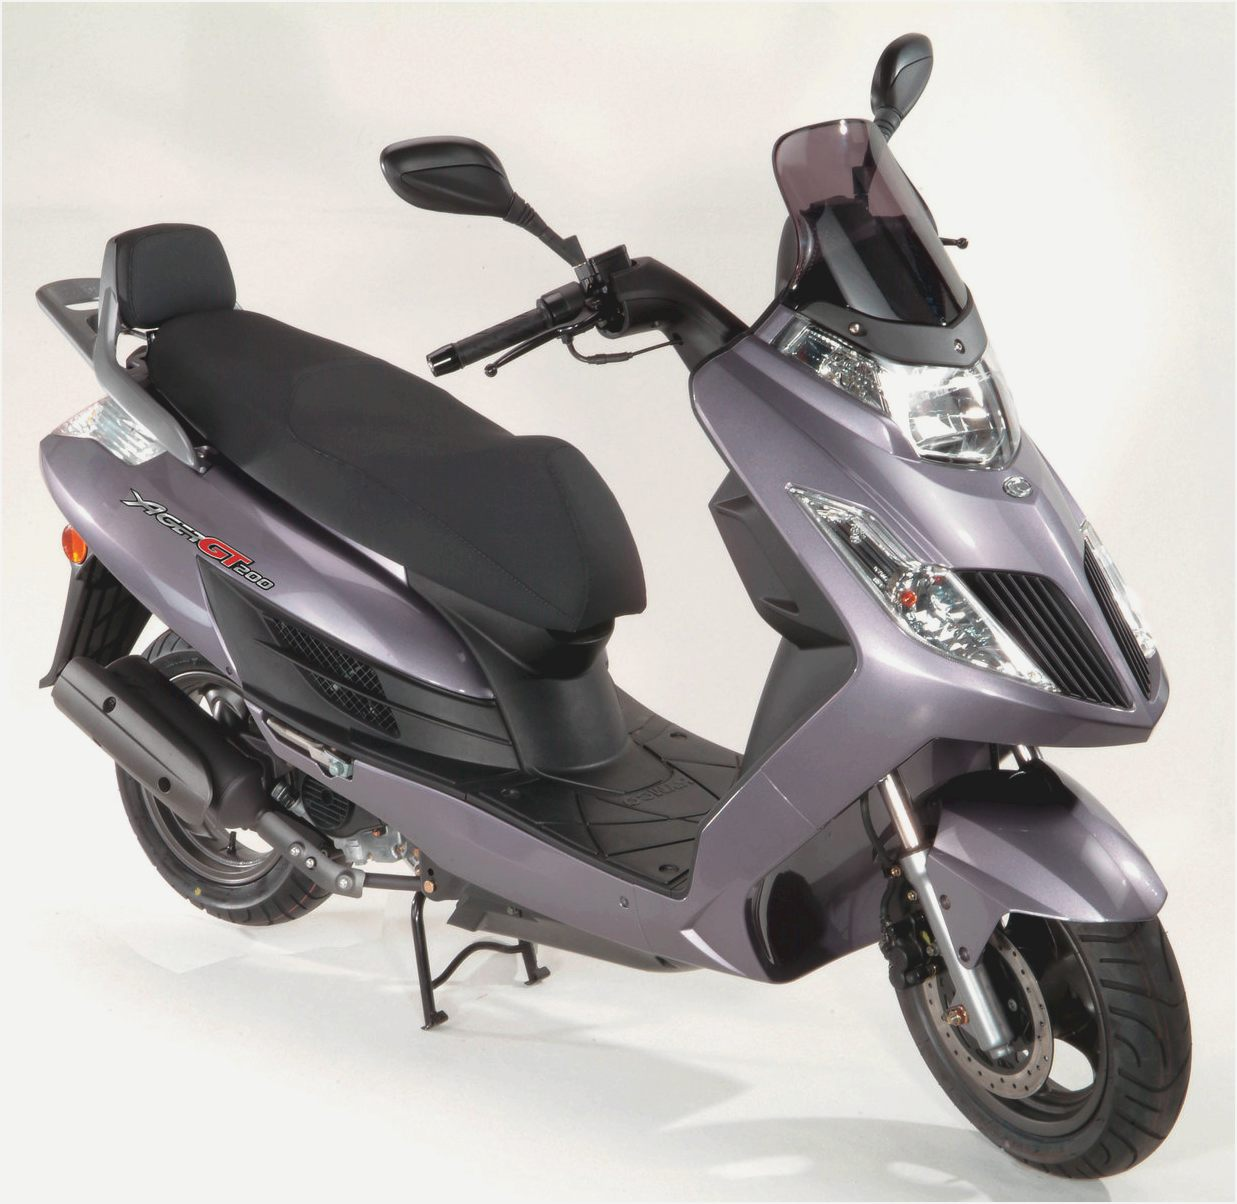 Kymco Yager 200 2010 images #102056